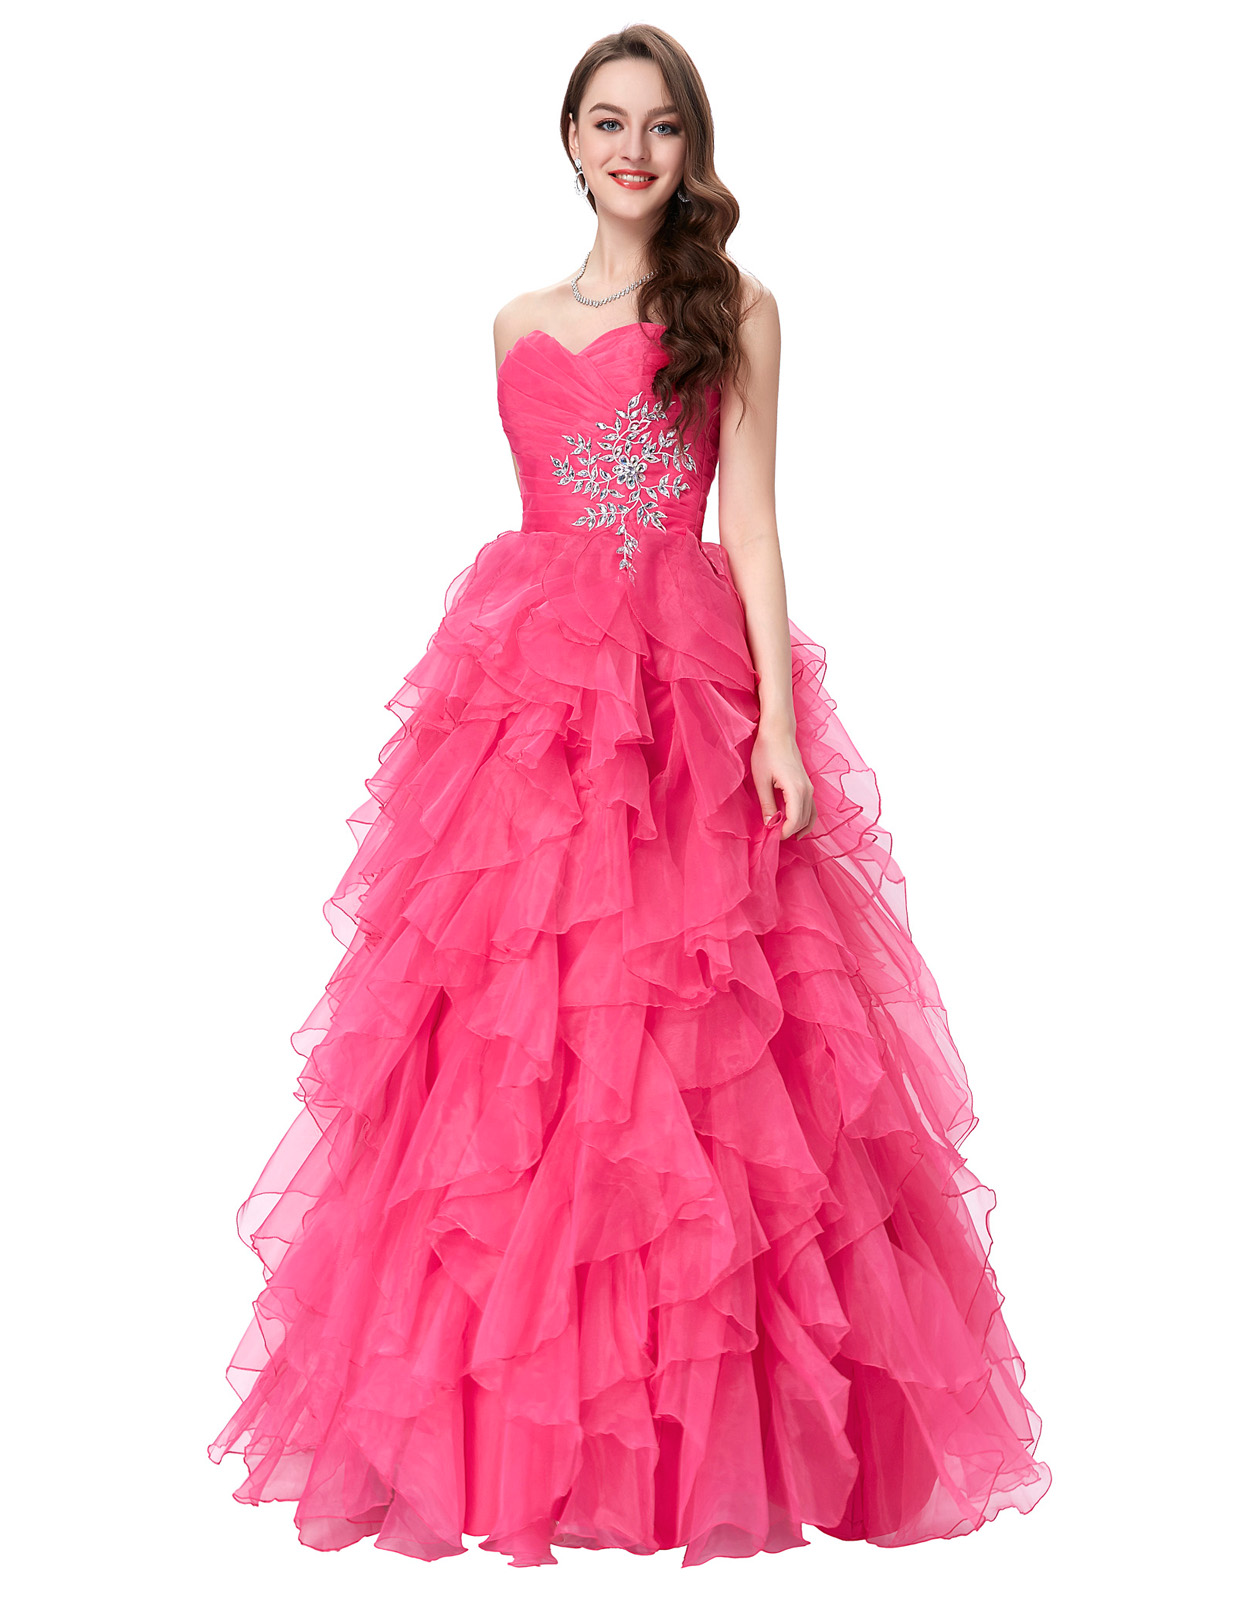 Hot quinceanera bridal dresses formal prom party ball gown for Formal dress for women wedding